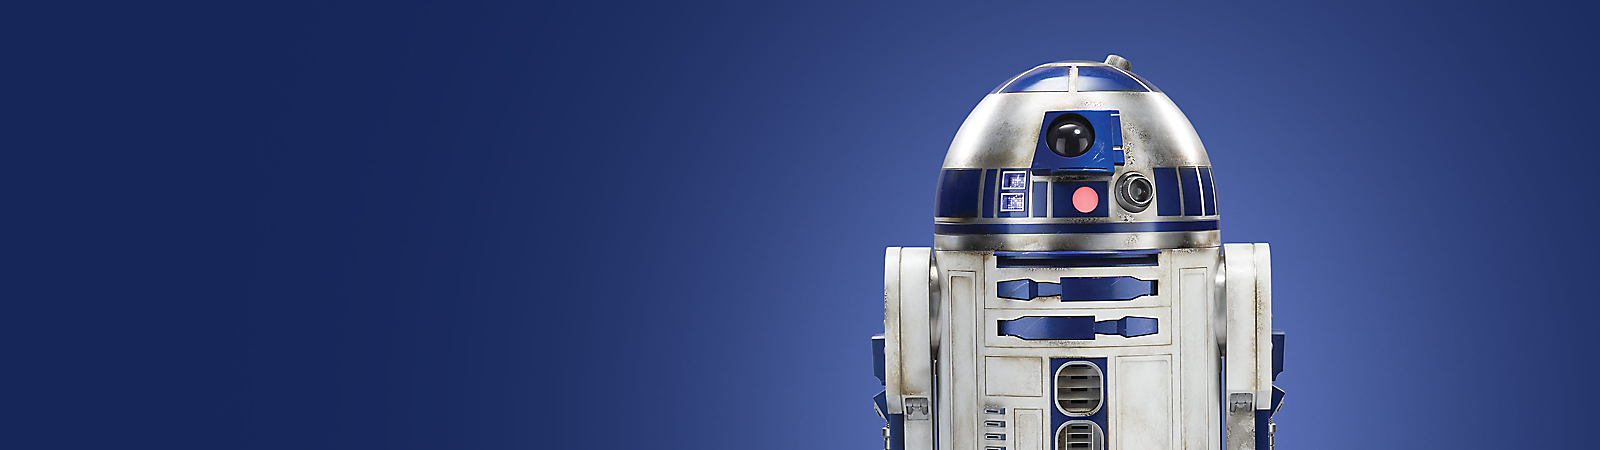 Background image of R2-D2